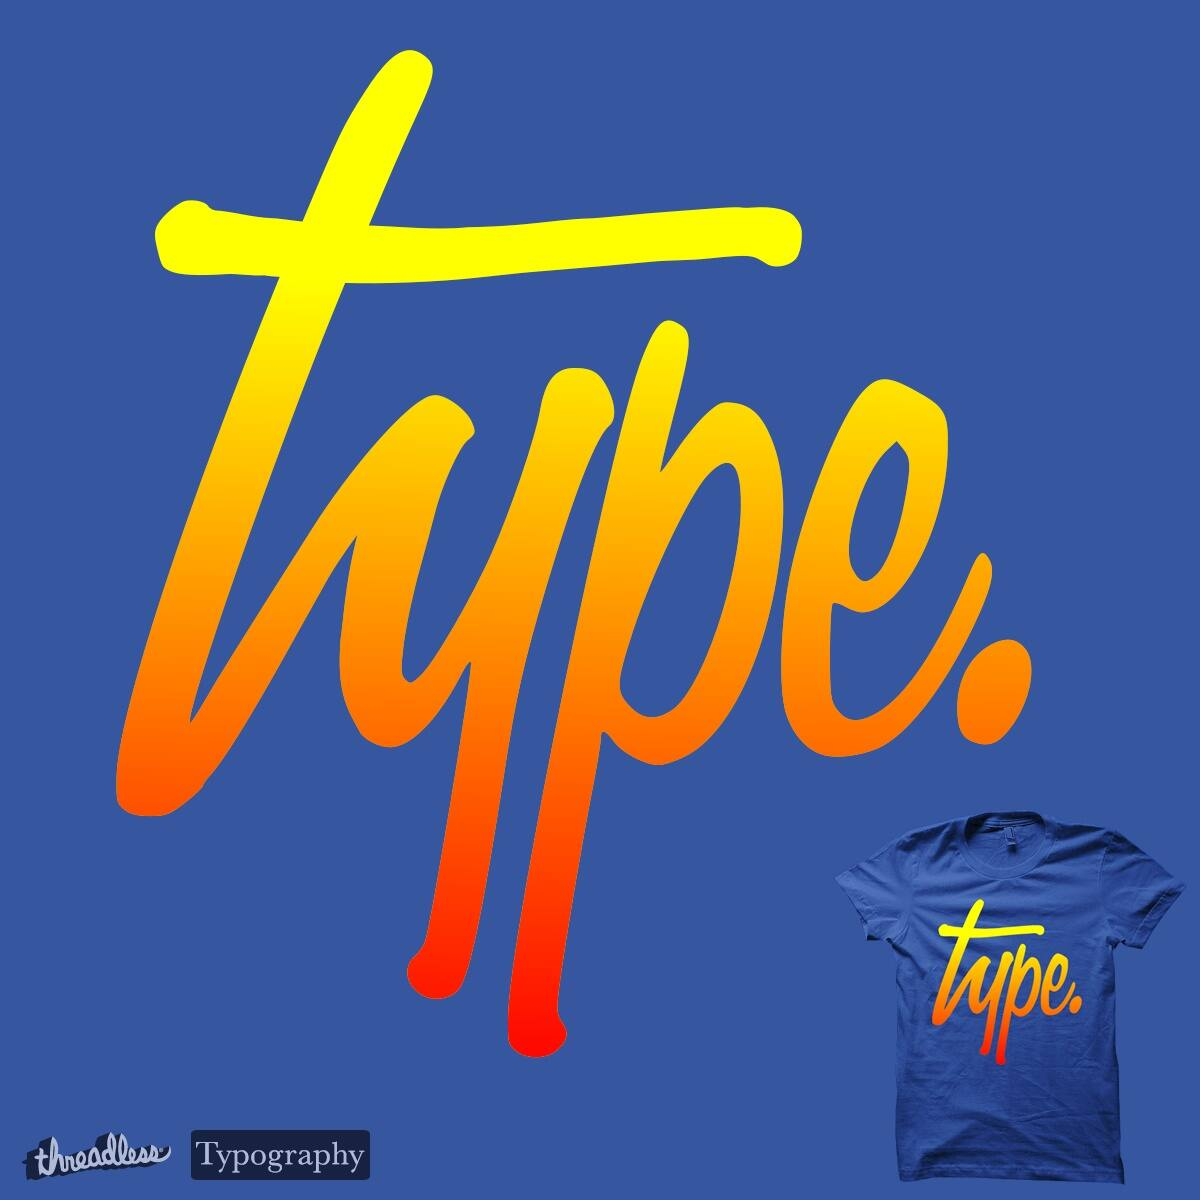 Type by freeves on Threadless